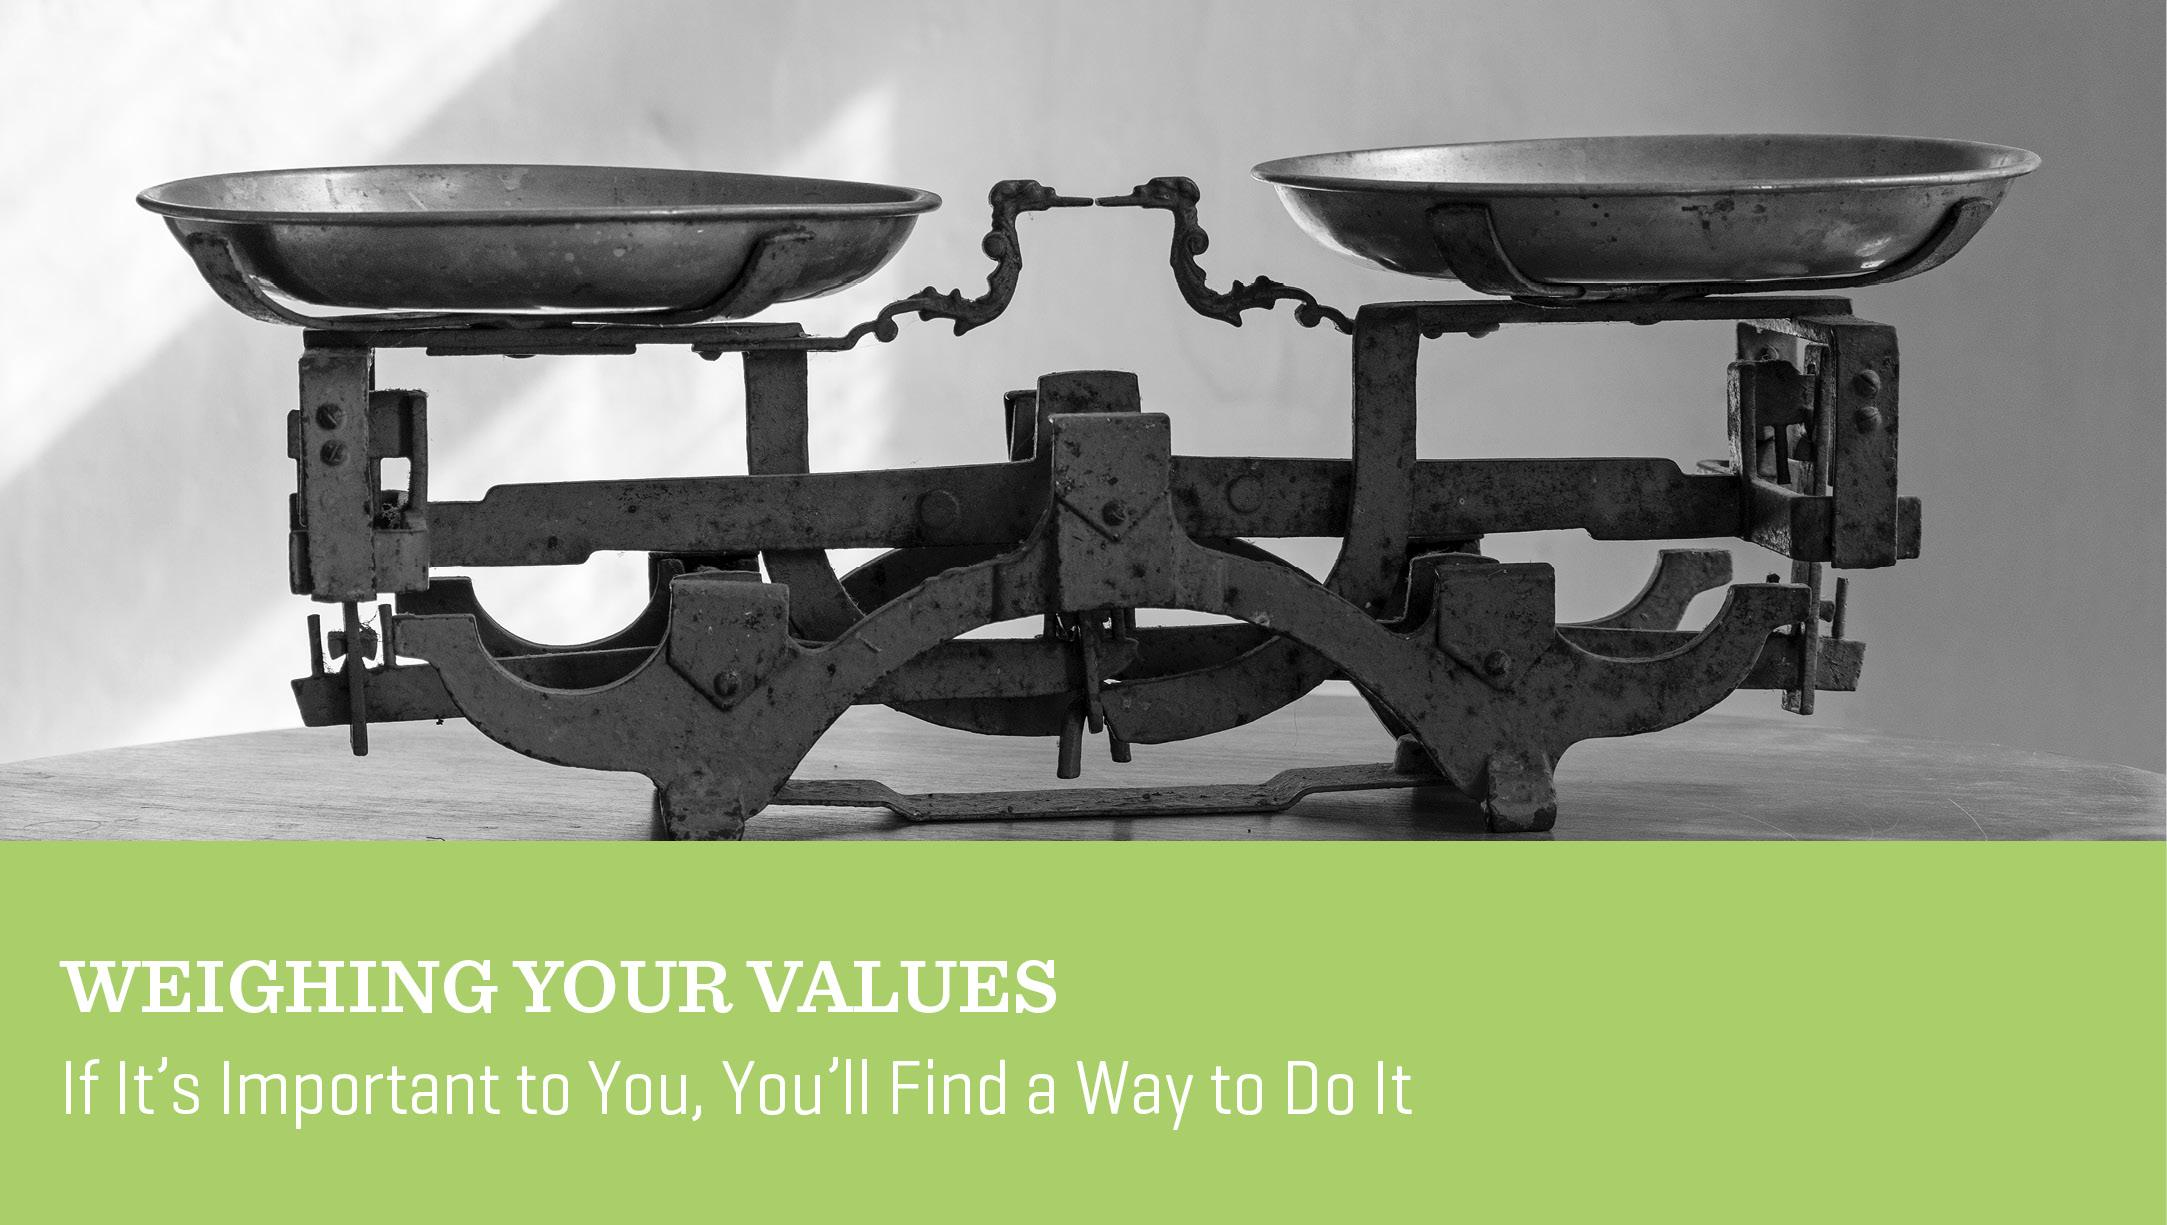 Weighing Your Values